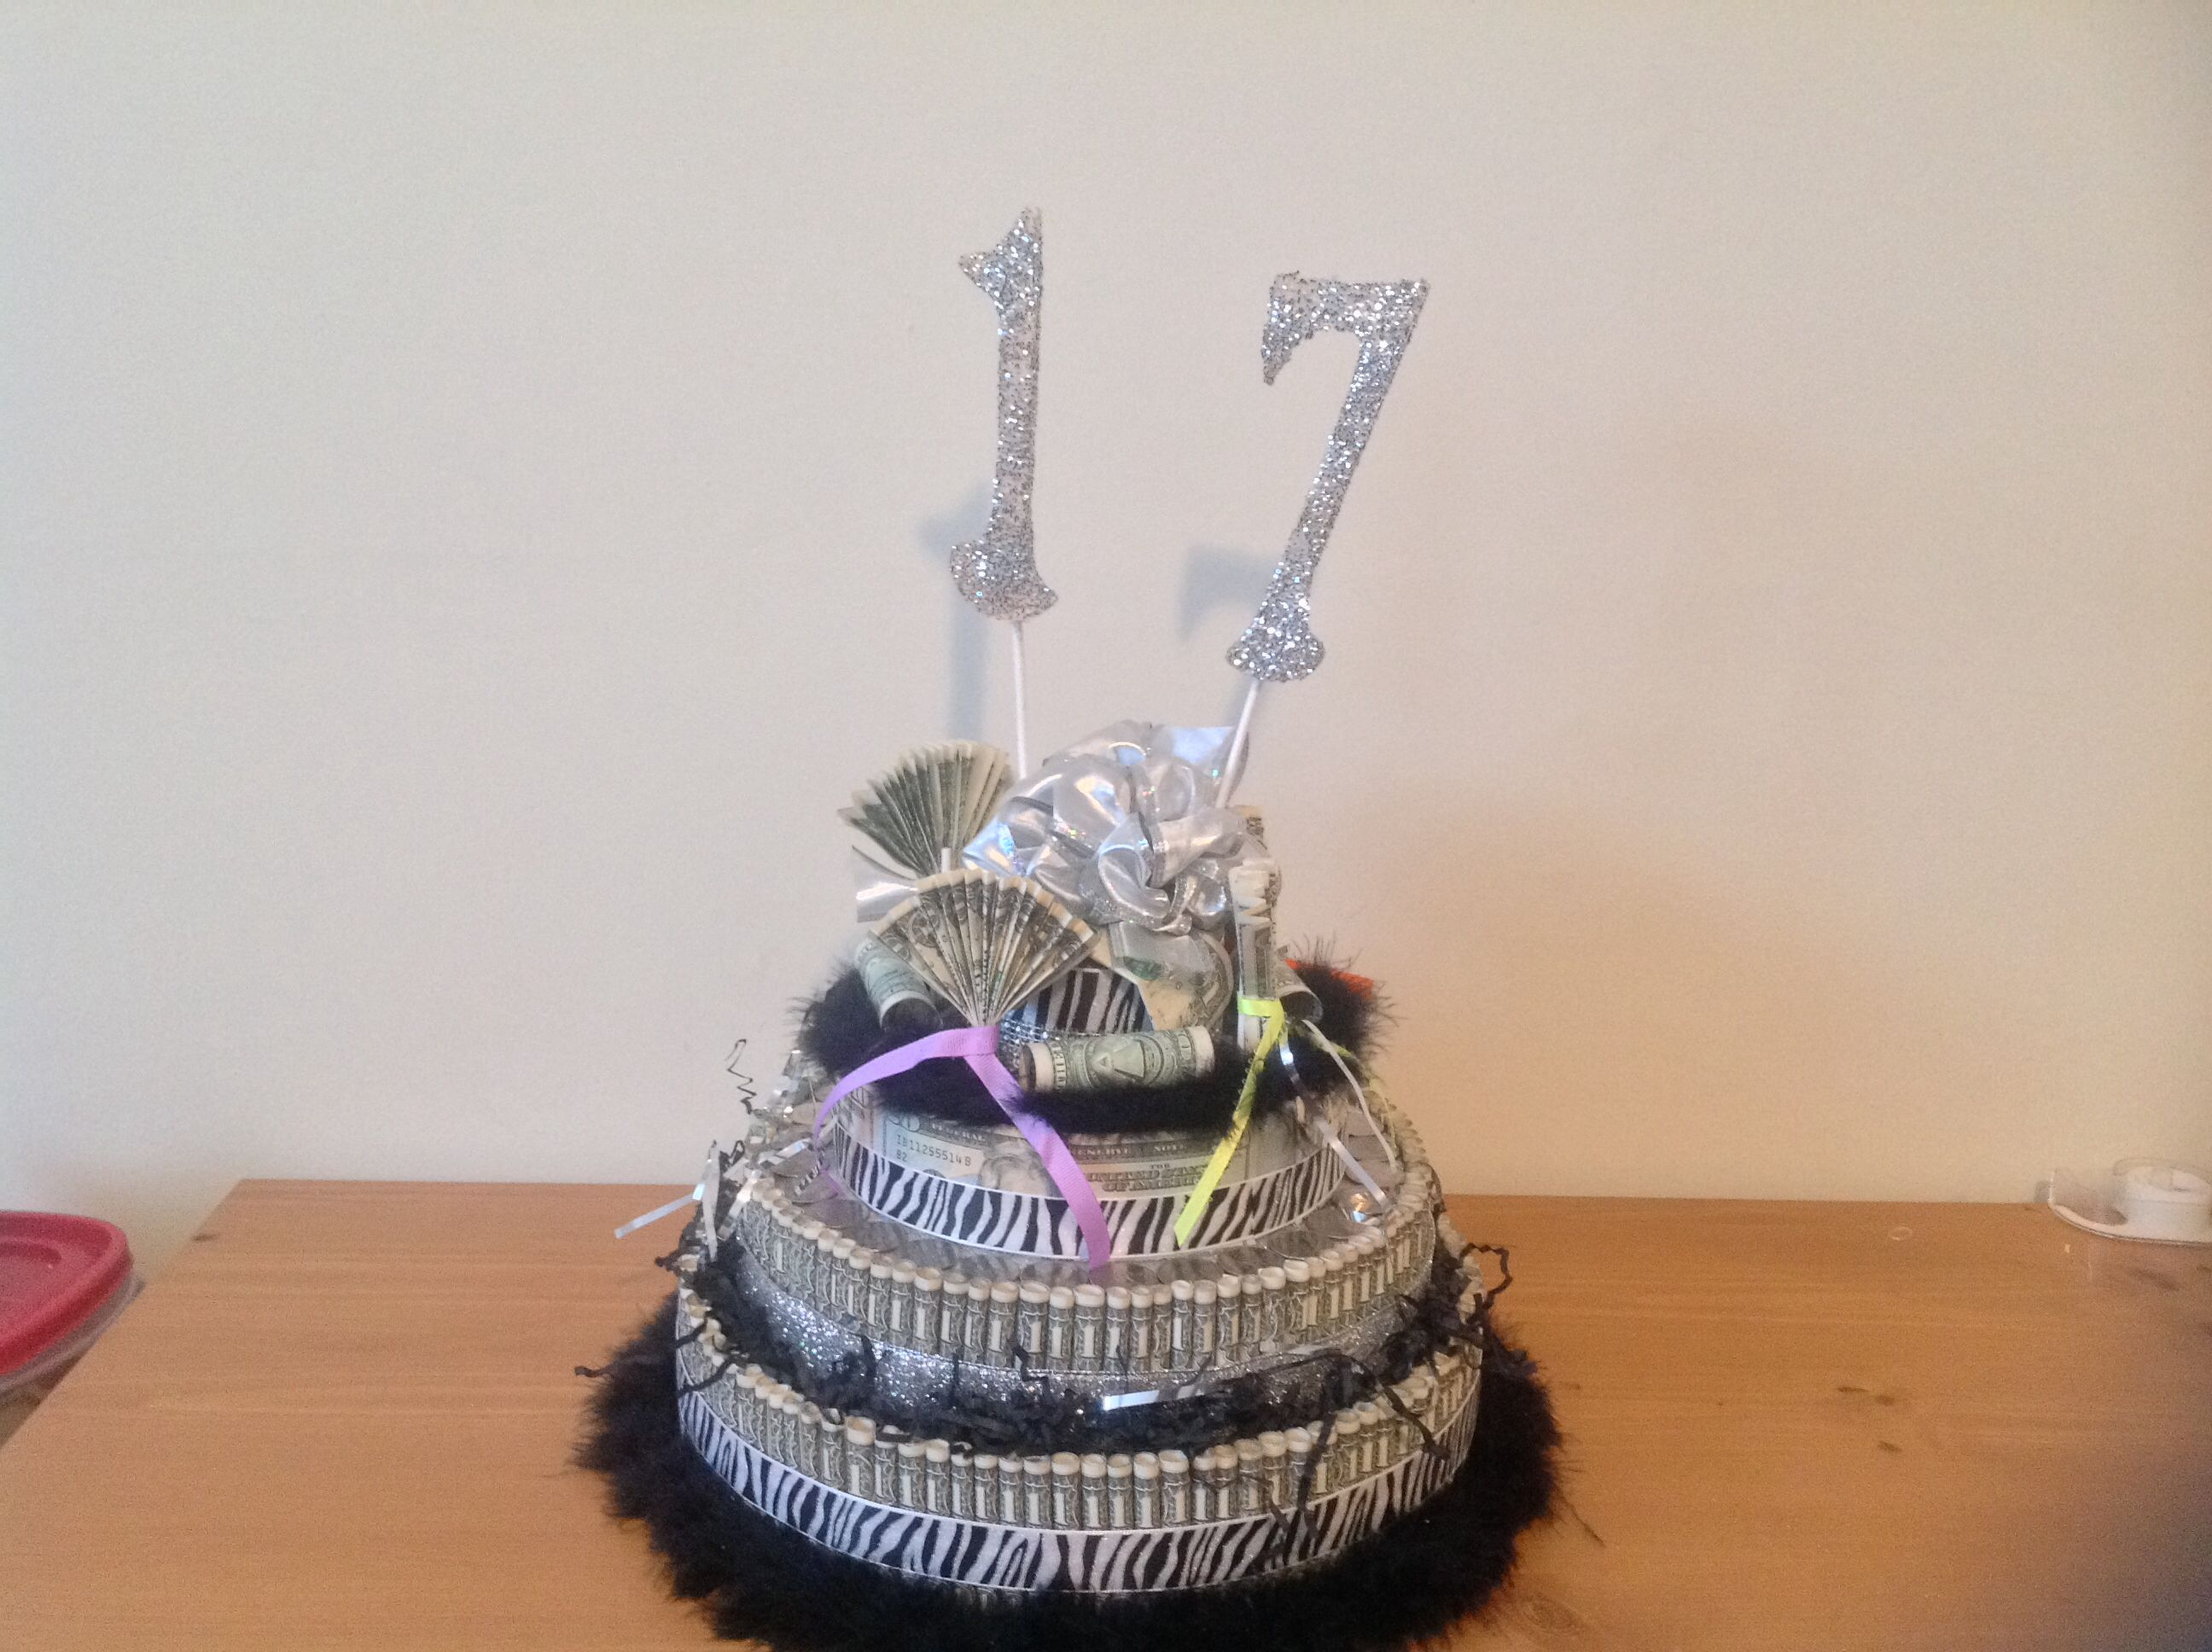 Cake Designs For 17 Year Old Boy : 17 year old money birthday cake Angela s Unique Gifts ...